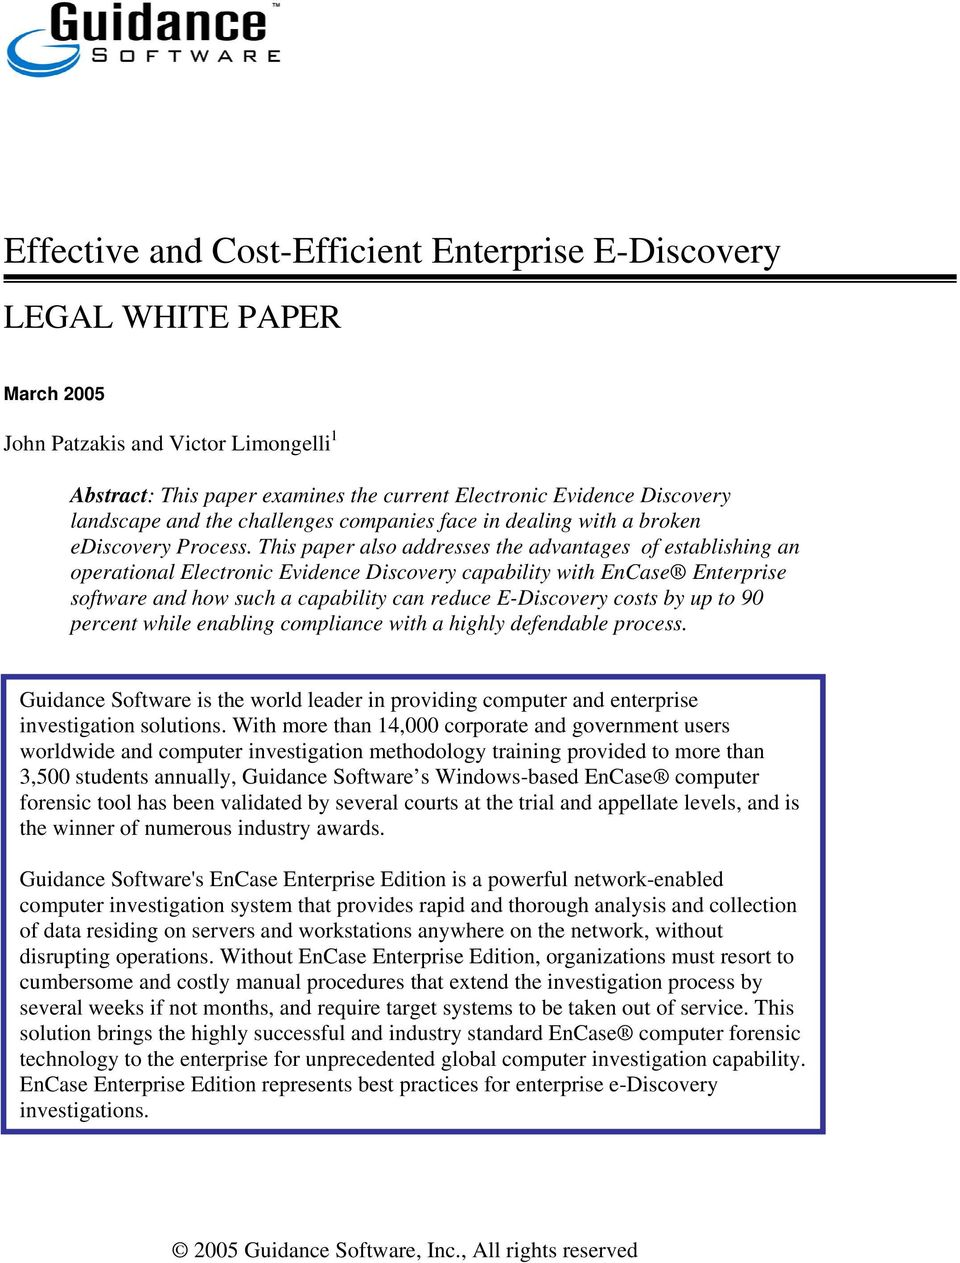 This paper also addresses the advantages of establishing an operational Electronic Evidence Discovery capability with EnCase Enterprise software and how such a capability can reduce E-Discovery costs